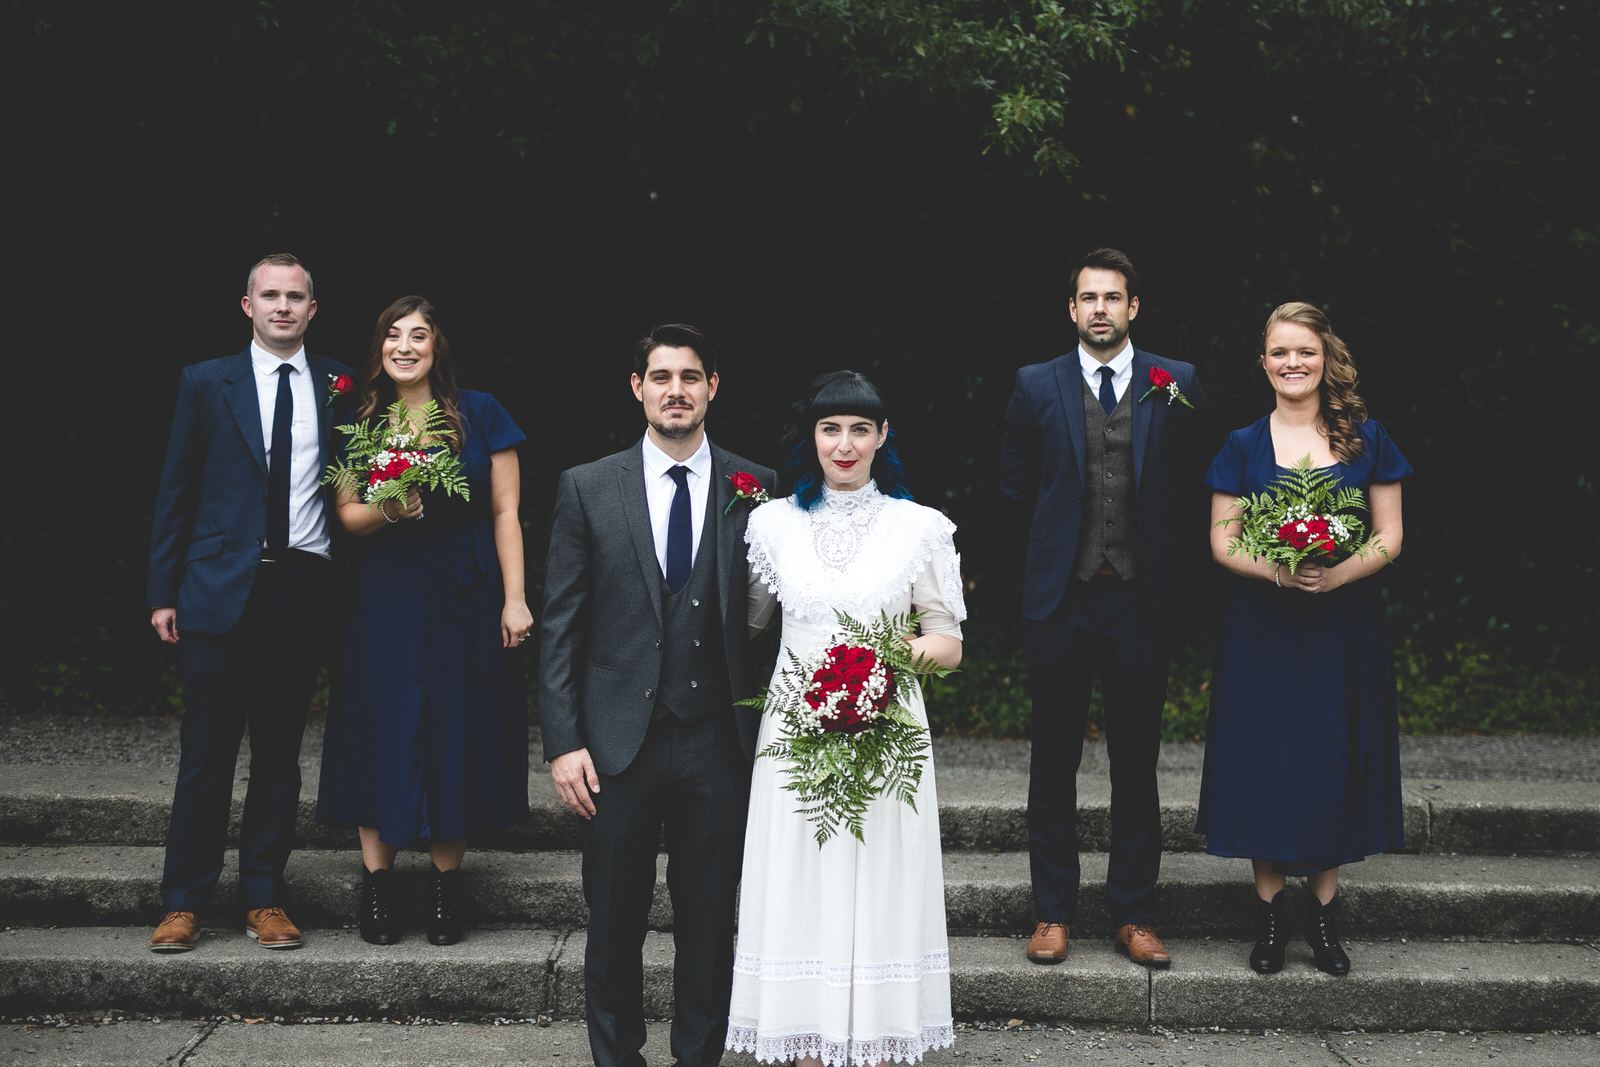 Iveagh Gardens wedding Dublin